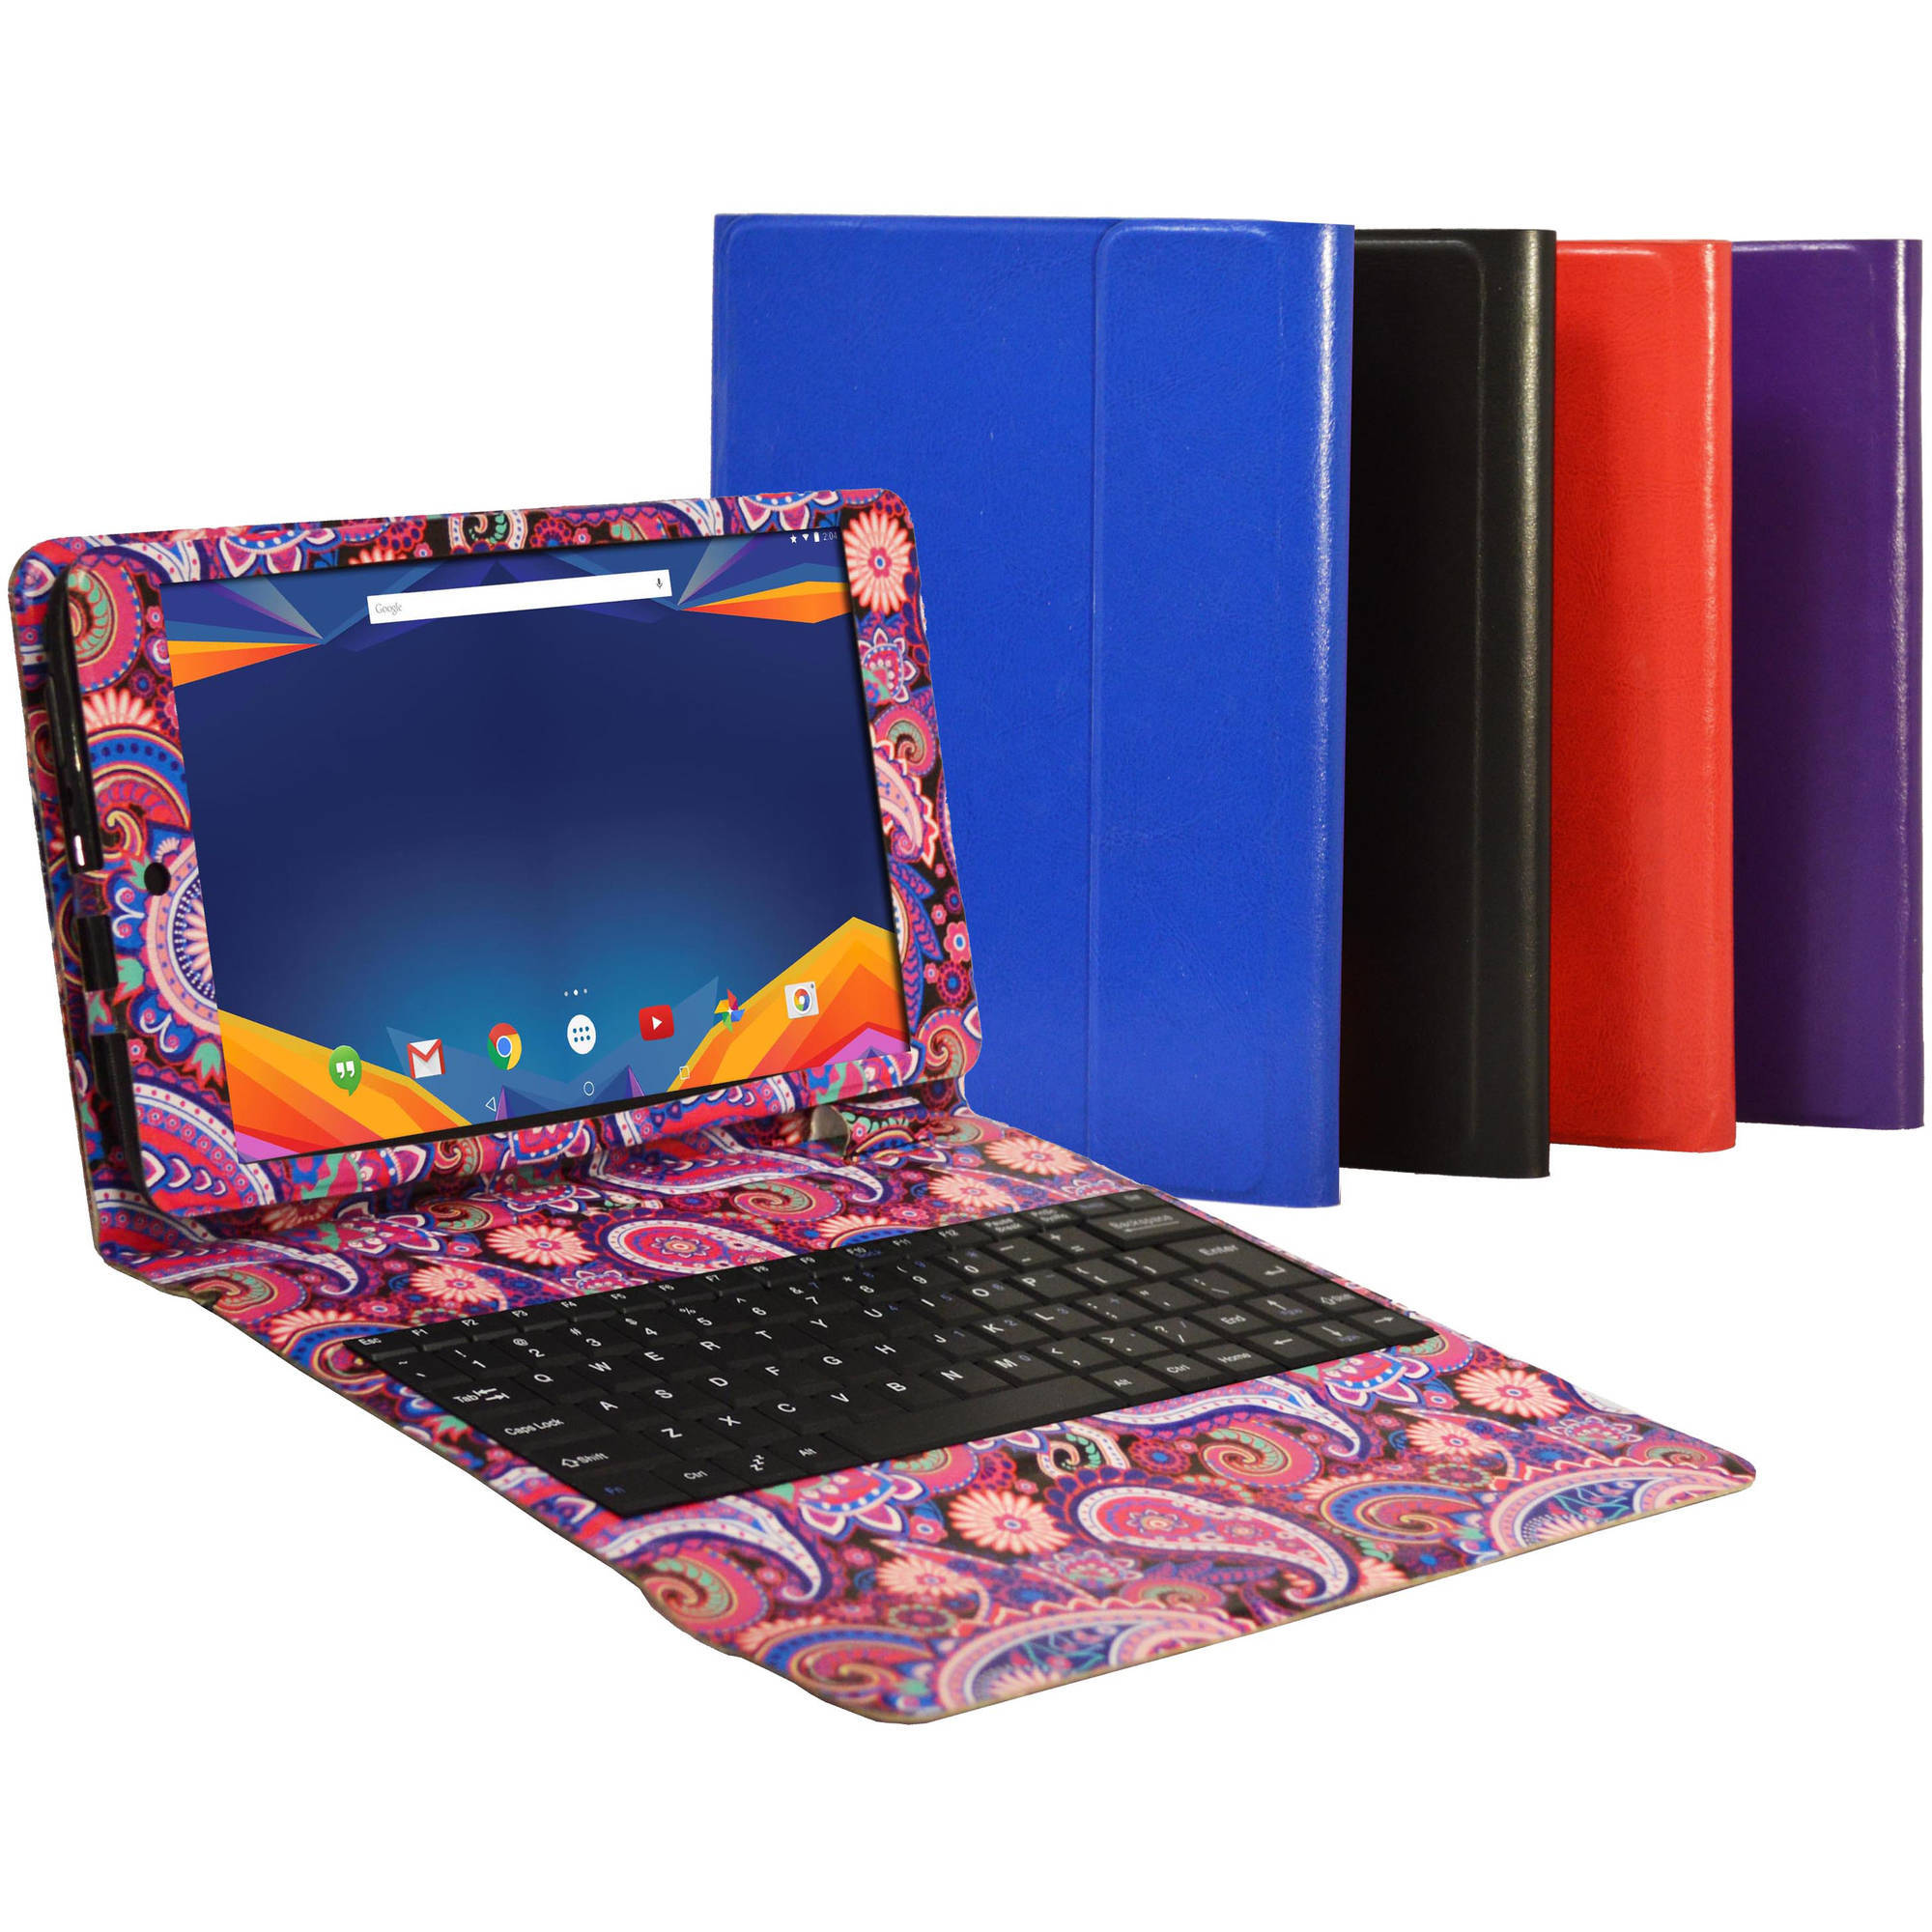 "Visual Land 10.1"" IPS Octa Core Tablet 16GB Dual Speakers includes Keyboard Case (Paisley)"